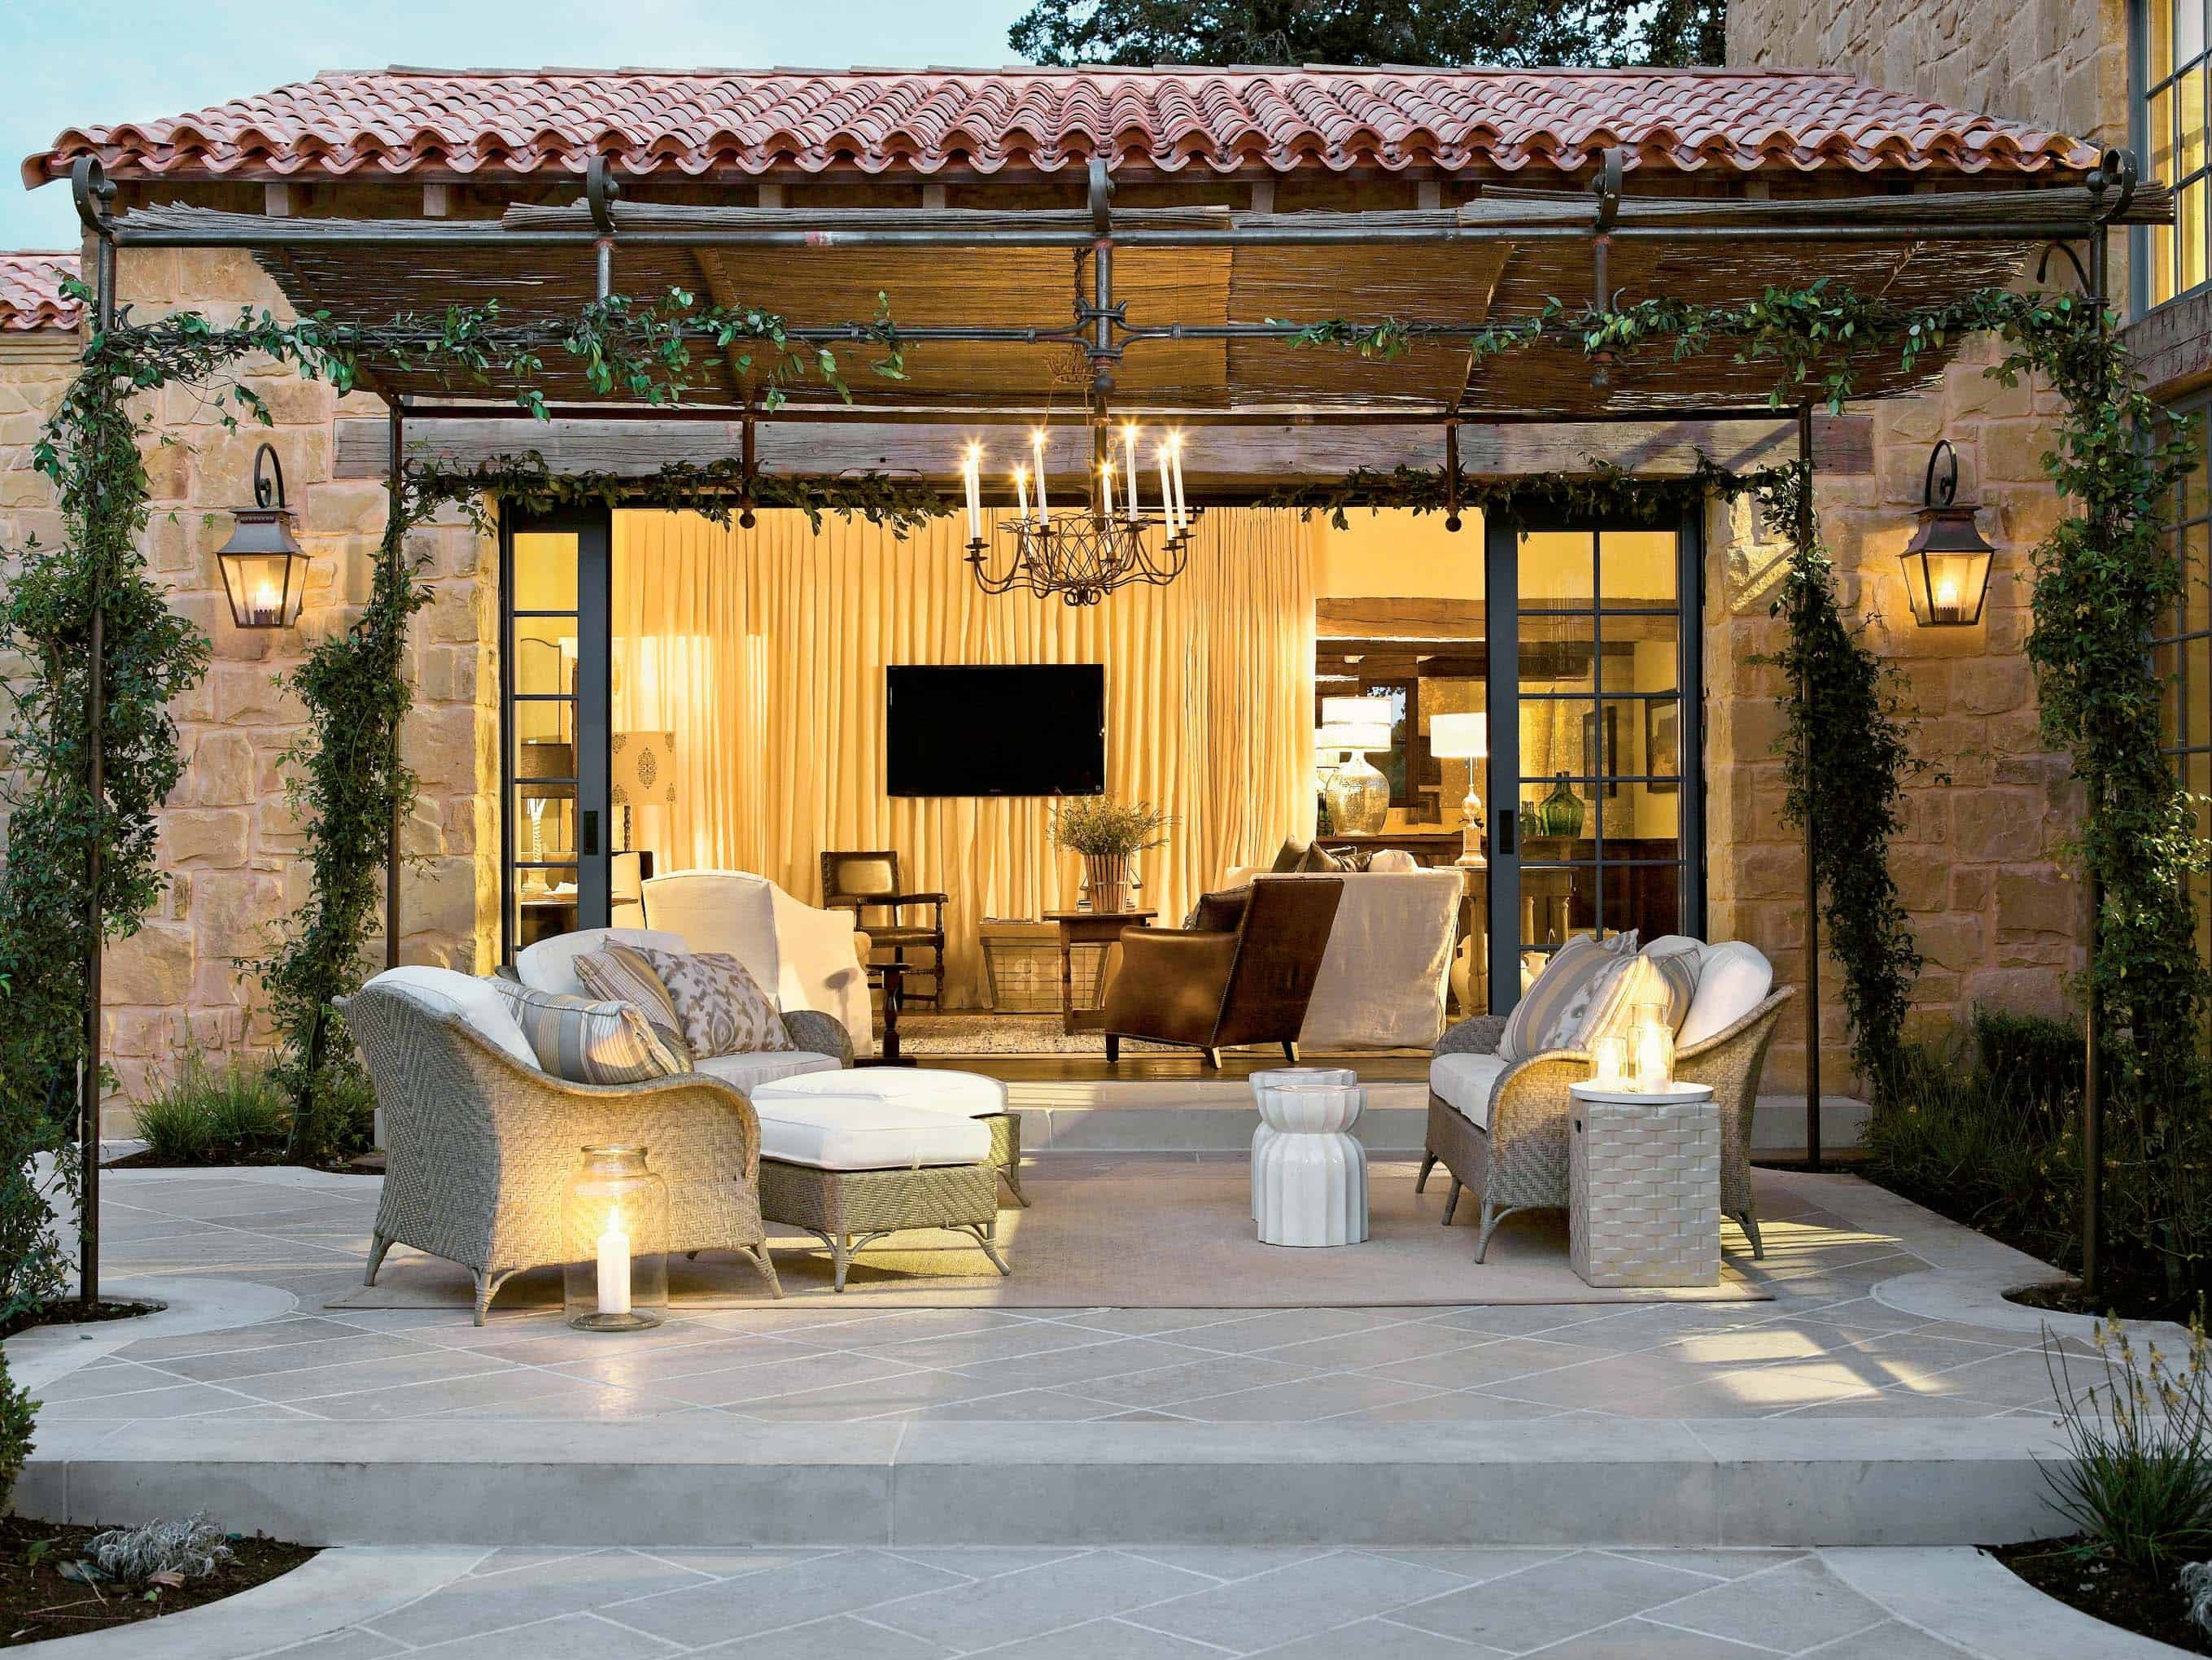 outdoor space with shelter Important Things To Know Before Designing Your Outdoor Space